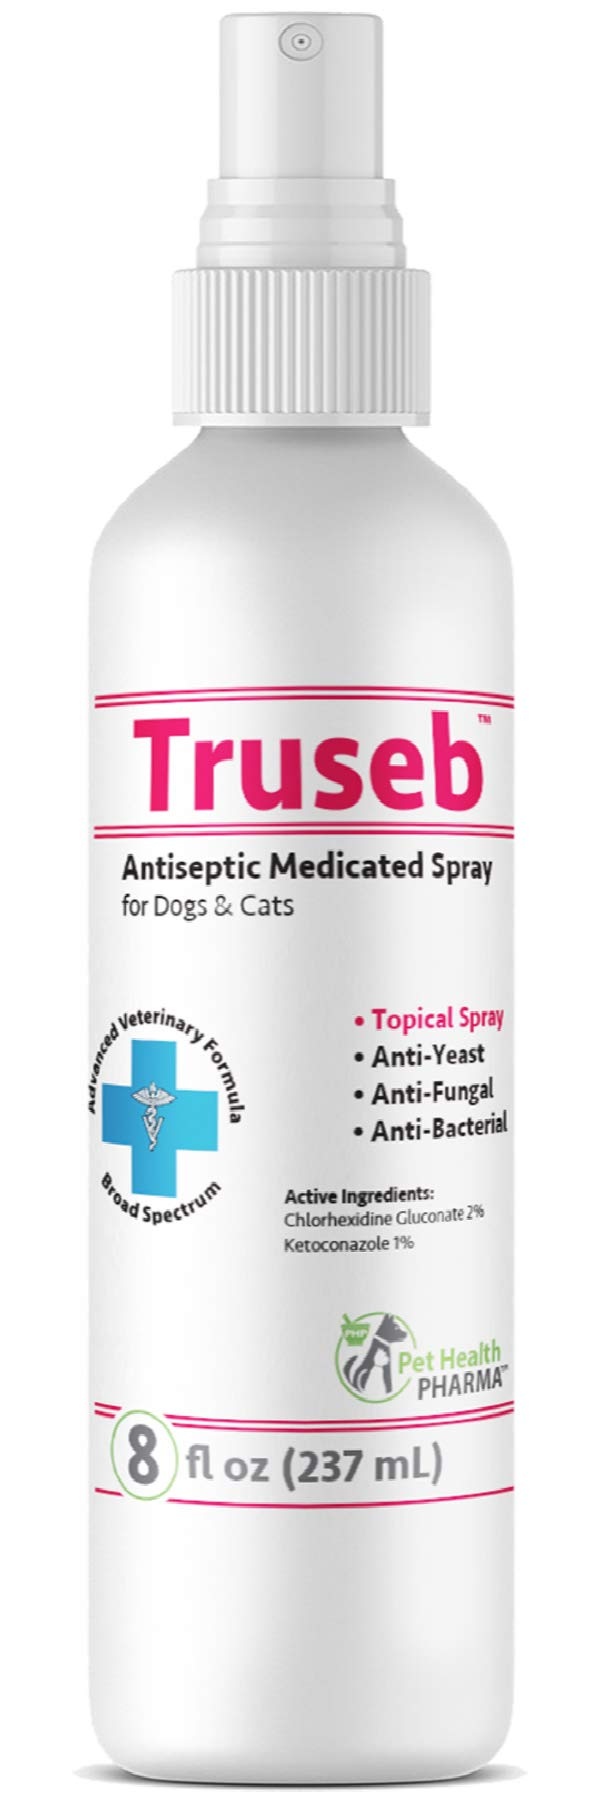 Truseb | #1 Chlorhexidine Spray for Dogs, Cats and Horses, Antibacterial, Antiseptic, Antimicrobial and Antifungal Medicated Spray with Chlorhexidine 2%, Ketoconazole 1%.–Advanced Veterinary Formula